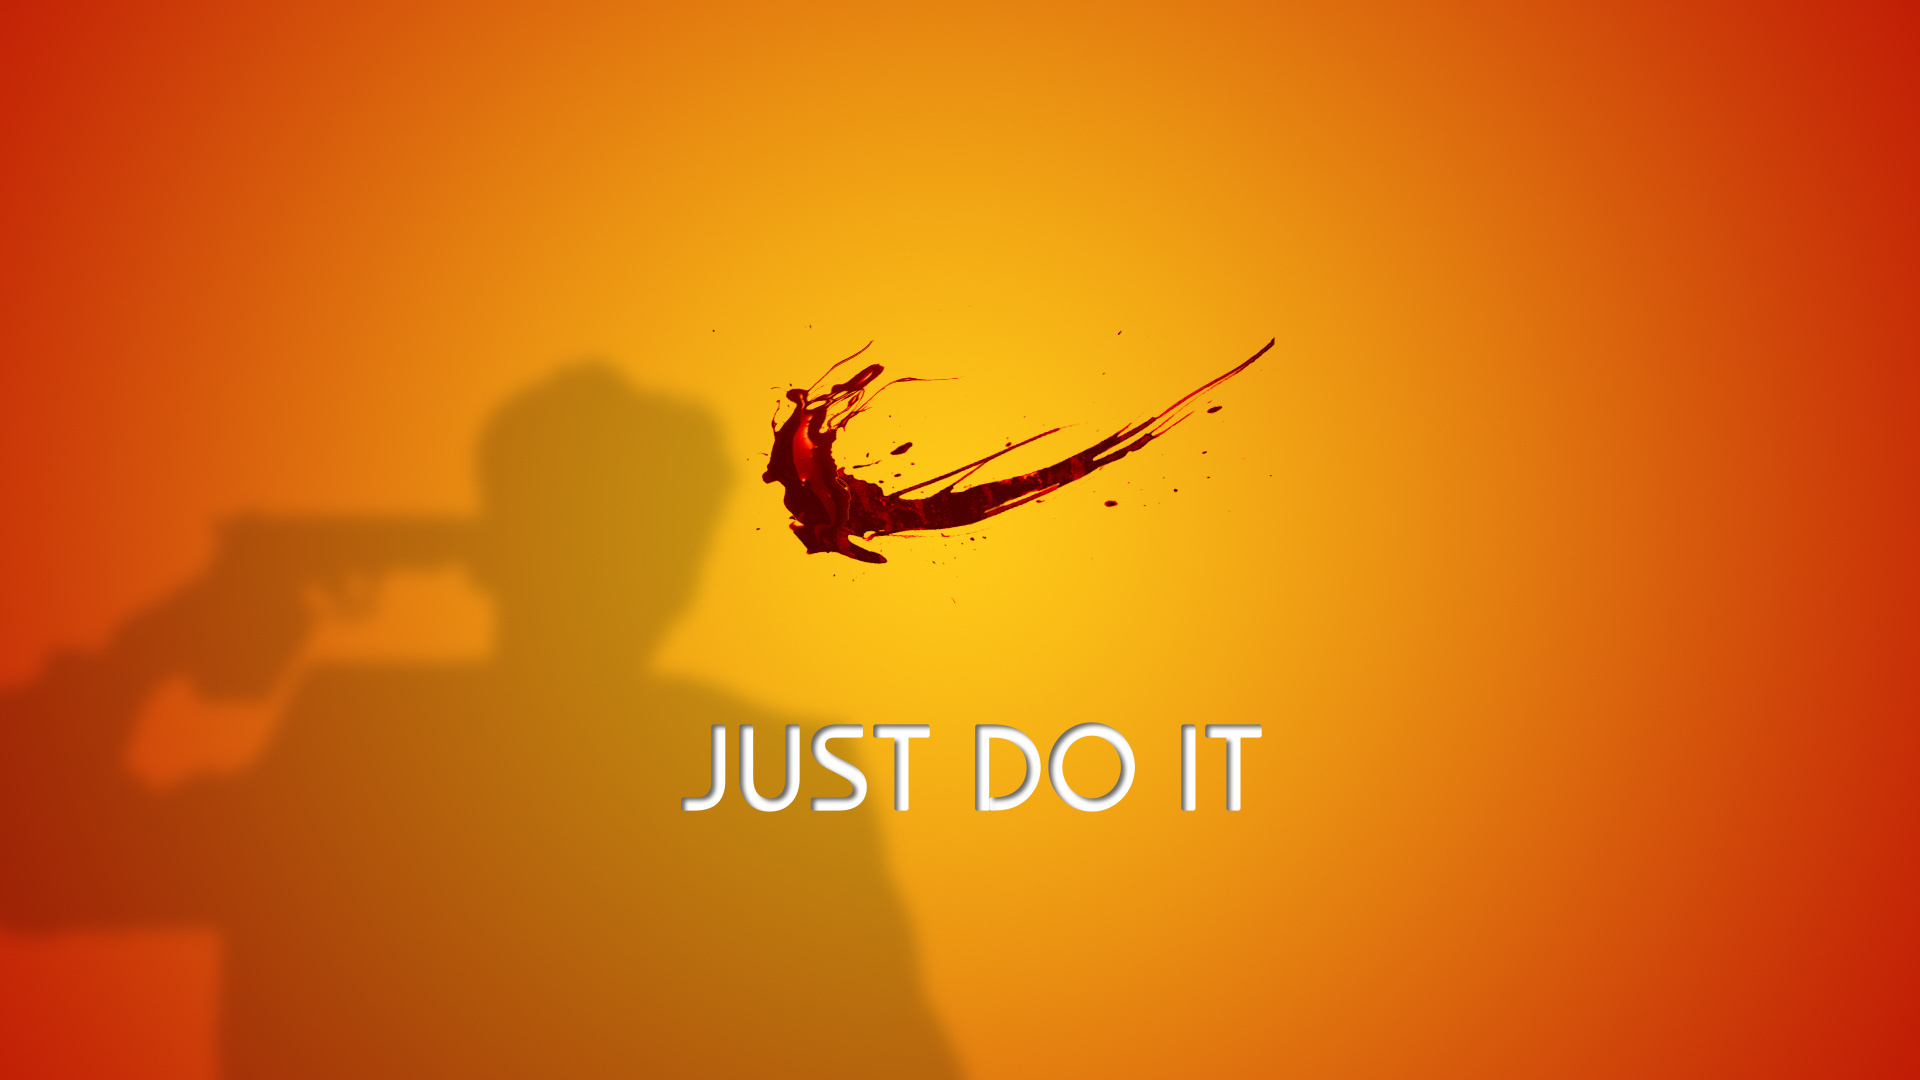 nike wallpapers just do it wallpaper 1920x1080